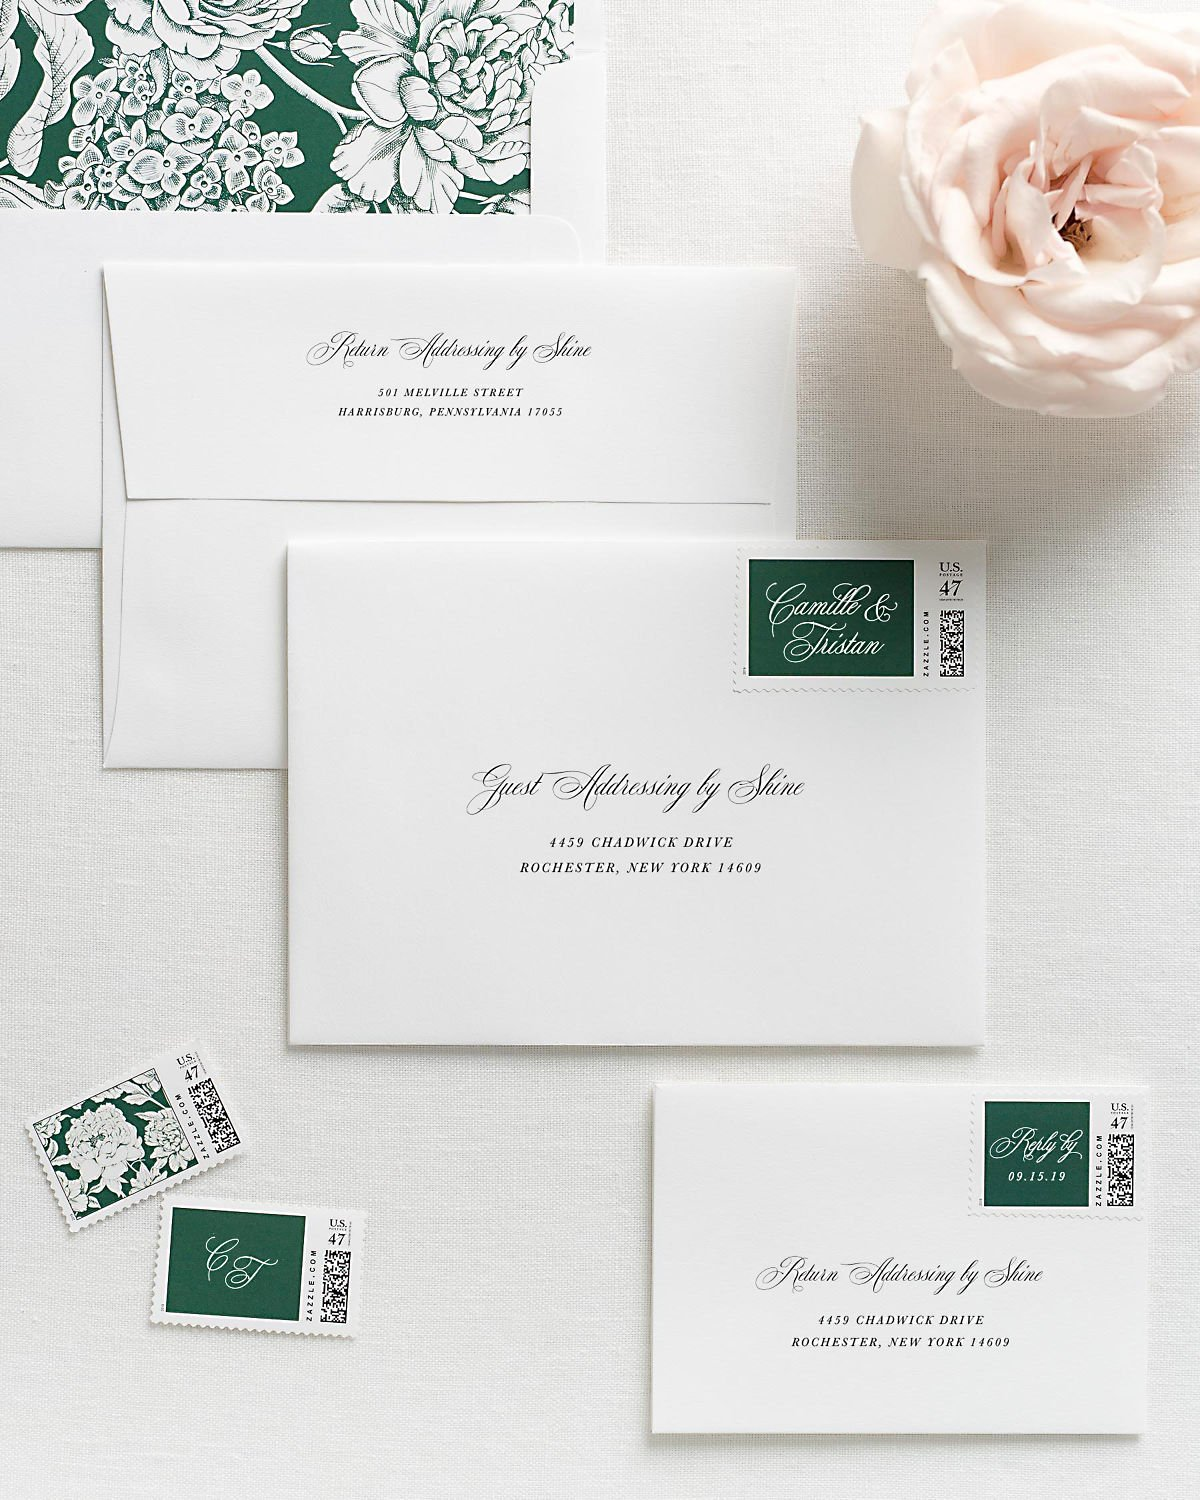 Wedding Invitation Envelopes with Pre-Printed Addresses and Matching Ivy Personalized Postage